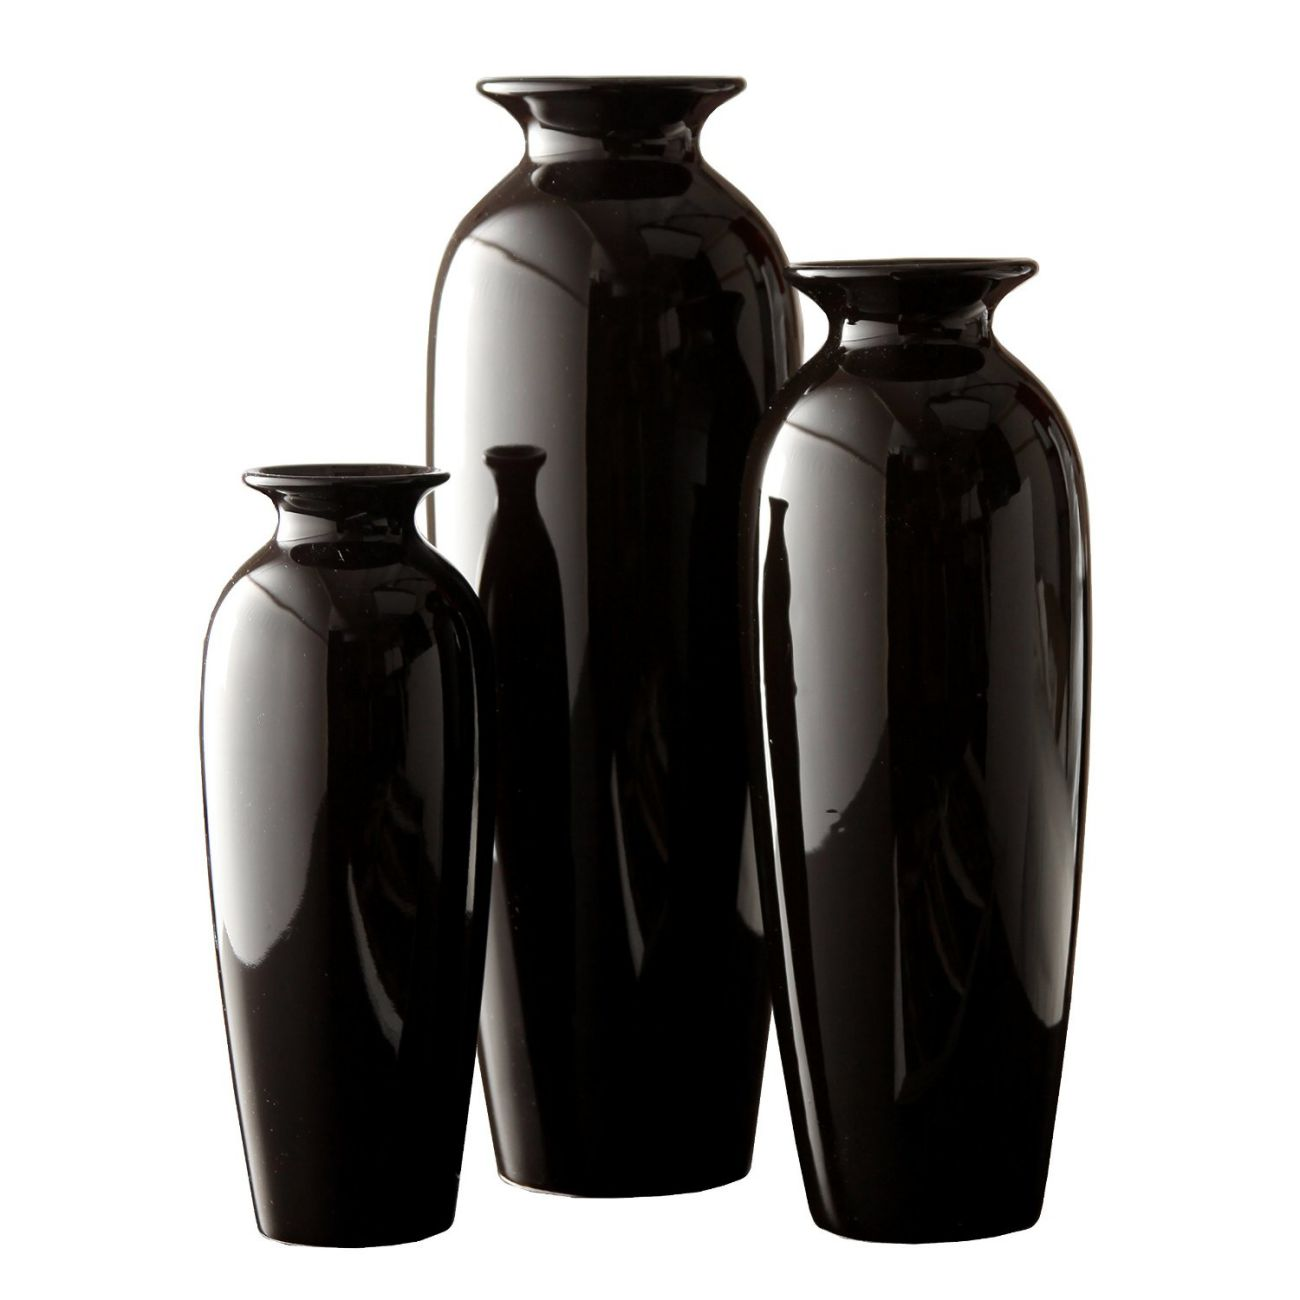 The Main Function Of Tall Cylinder Vases Decor On The Line